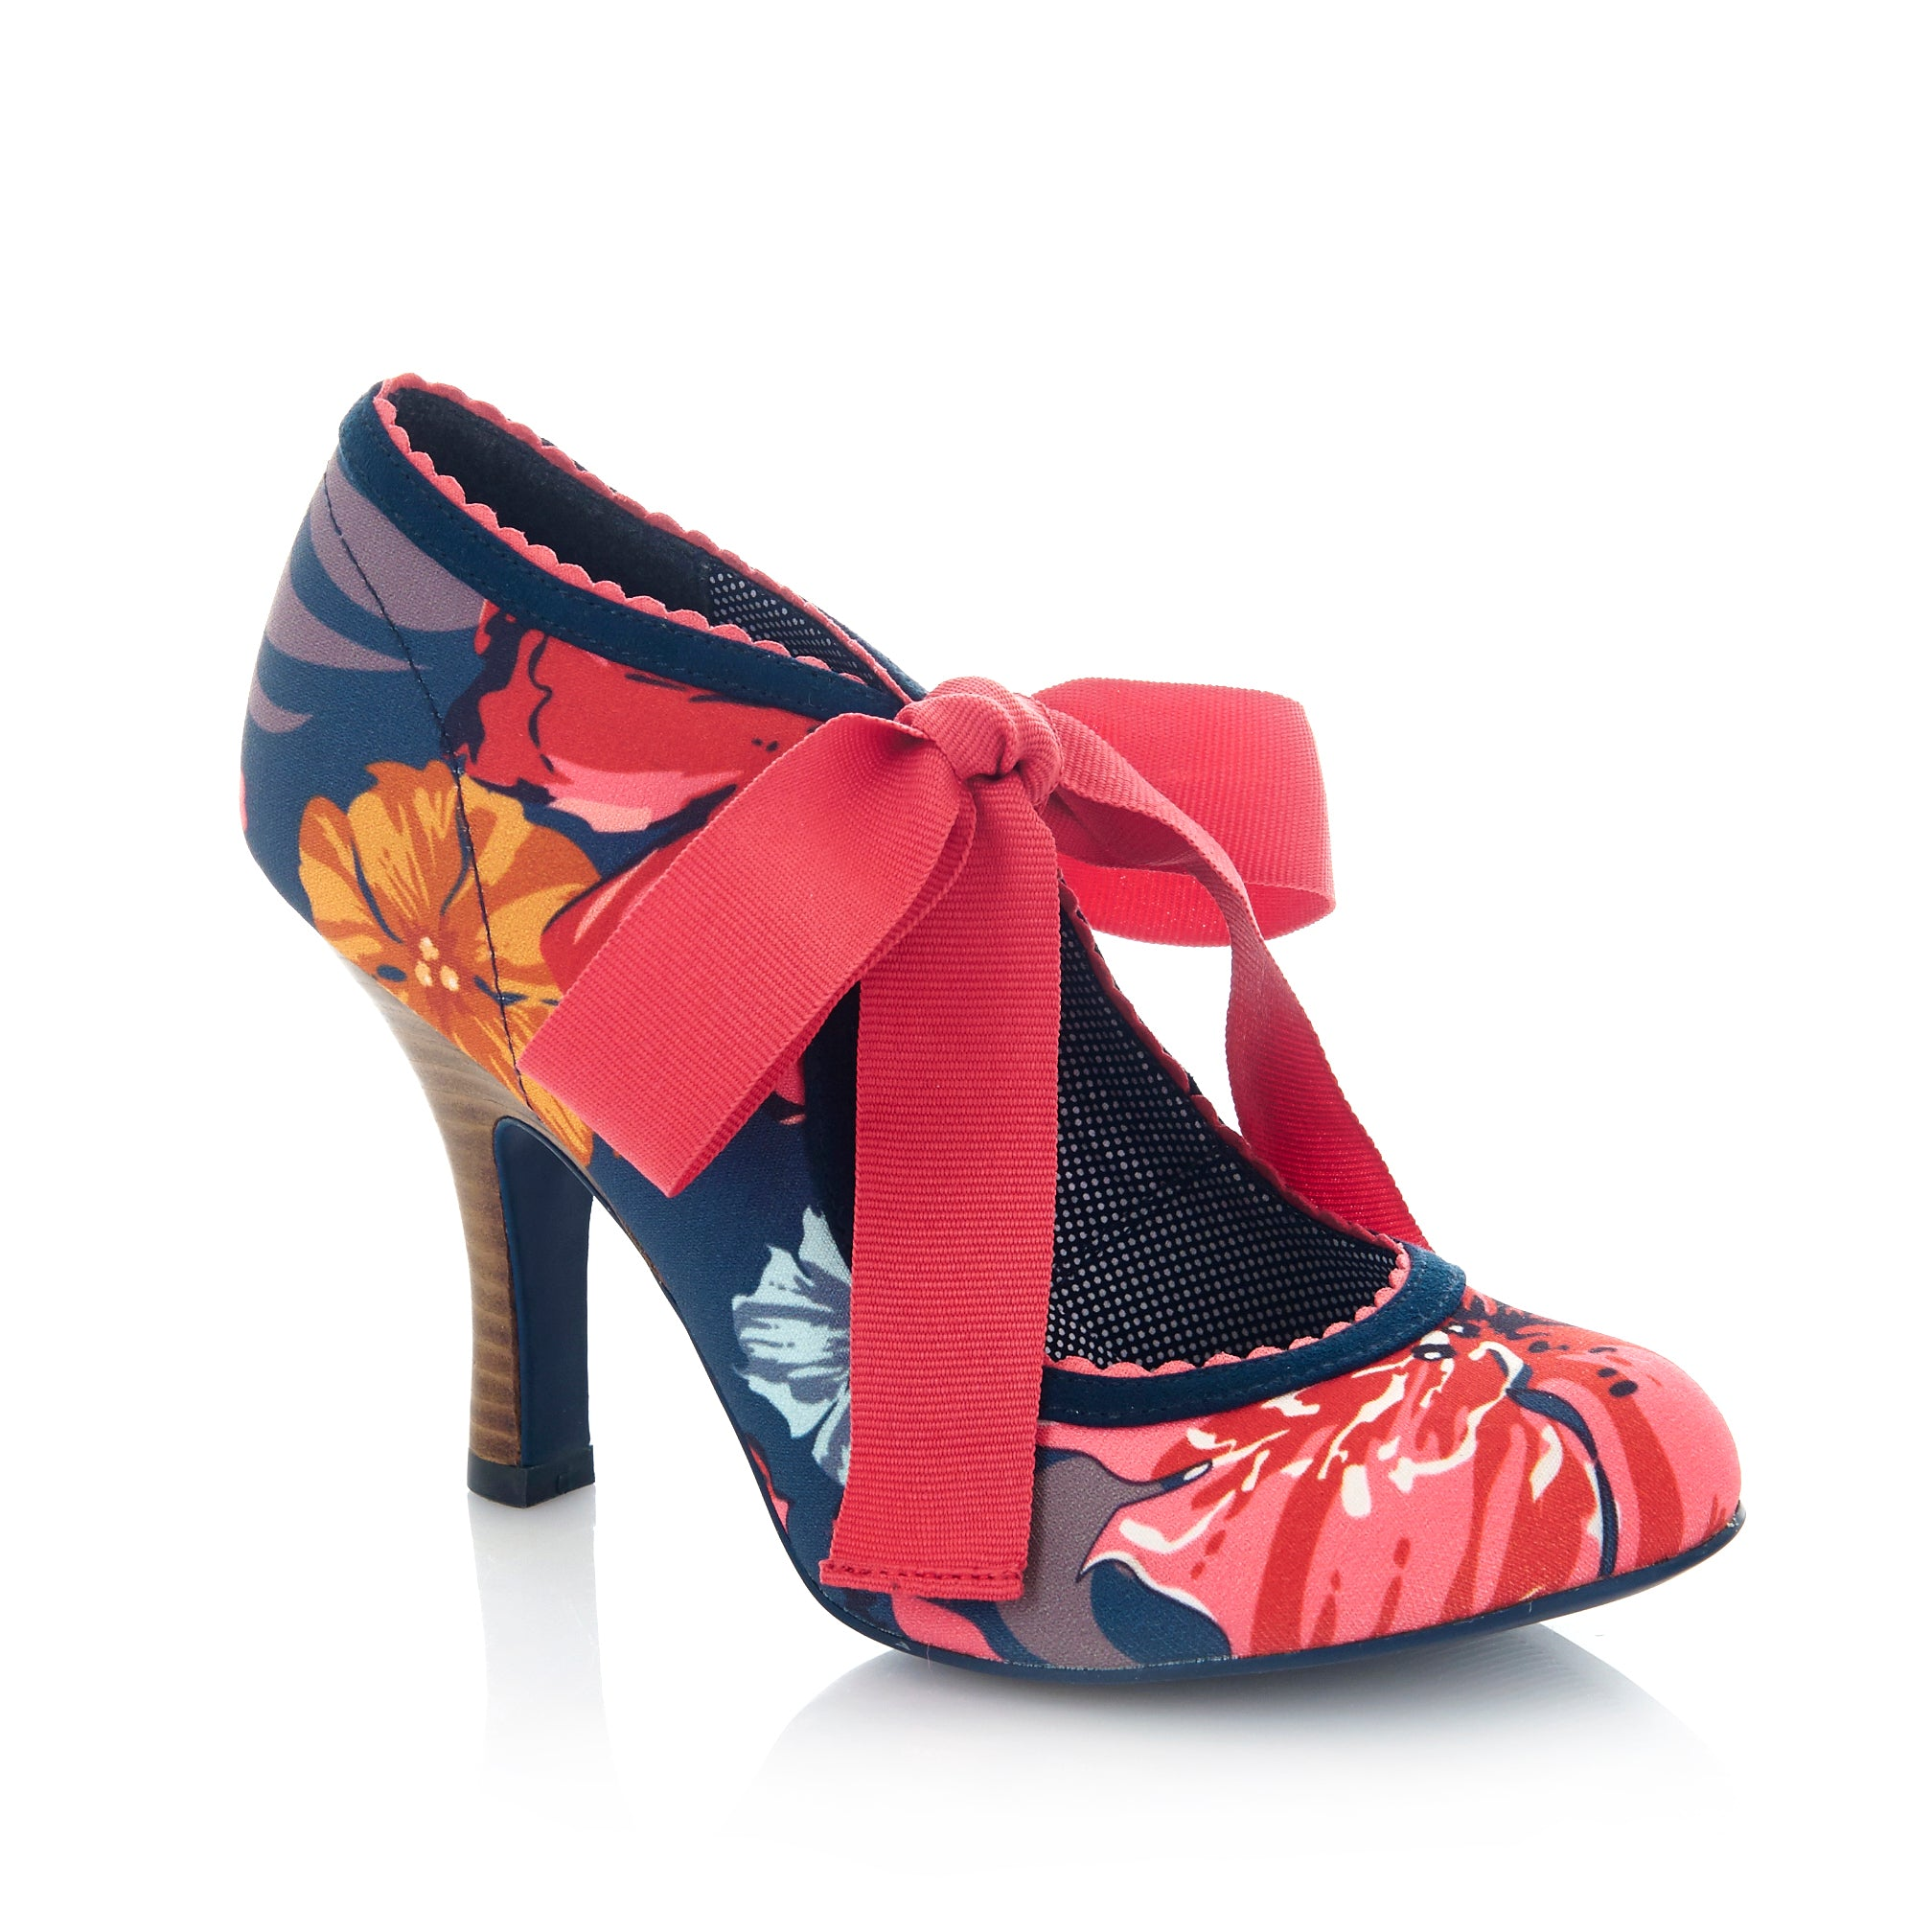 92f0da9f Ruby Shoo Willow Navy Coral Floral Print Ribbon Tie Court Shoes